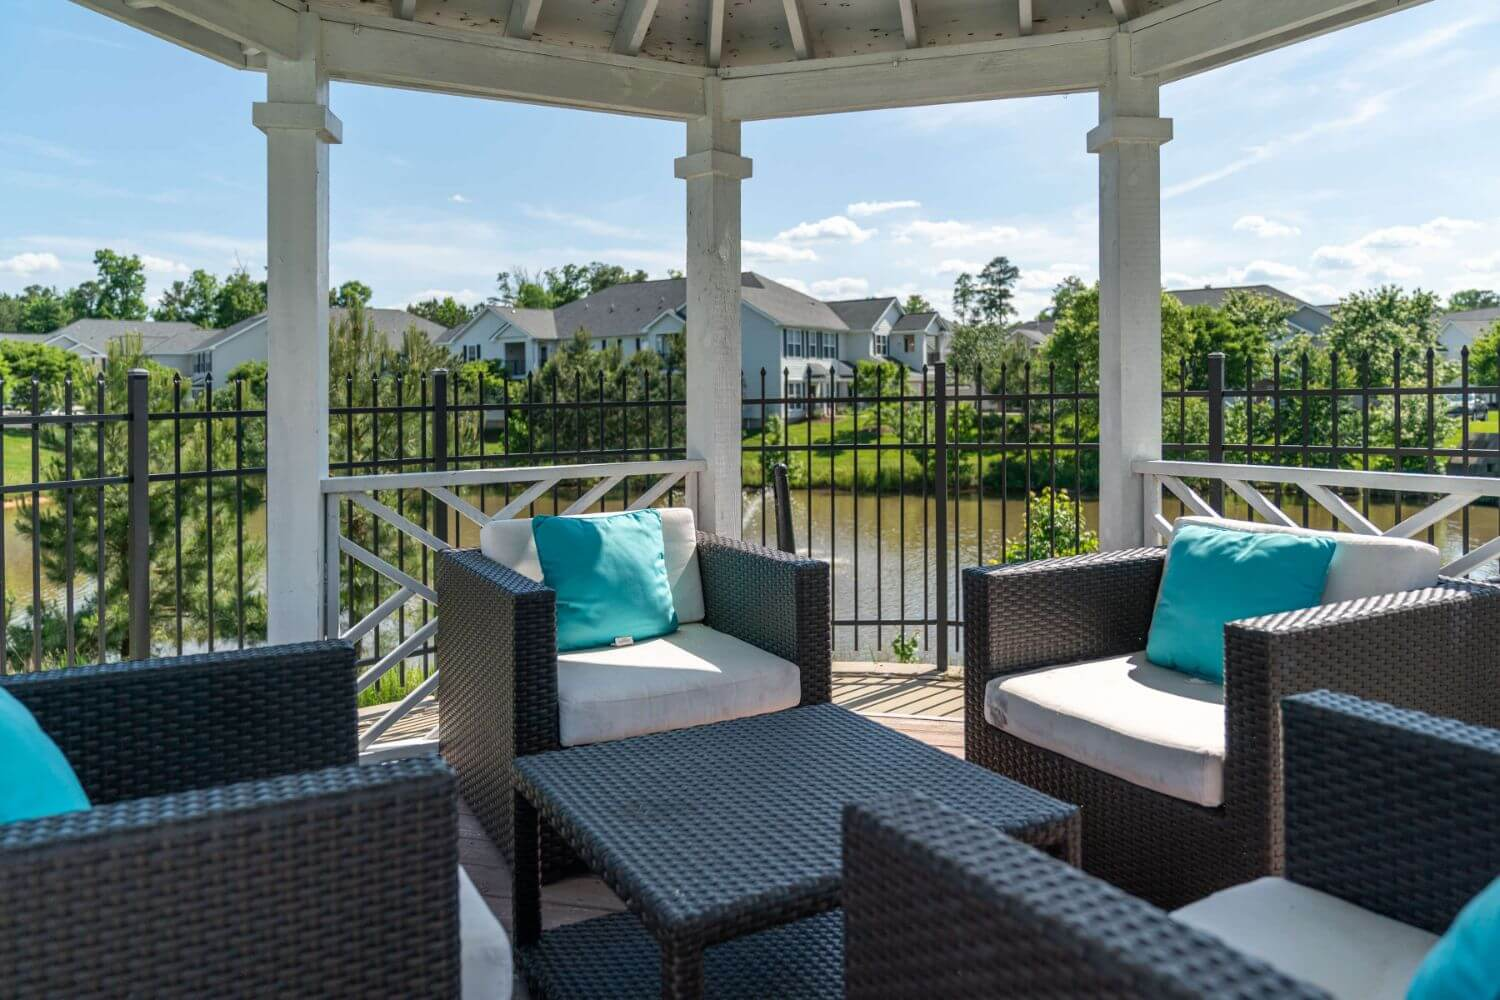 Outdoor pool area seating under a gazebo.